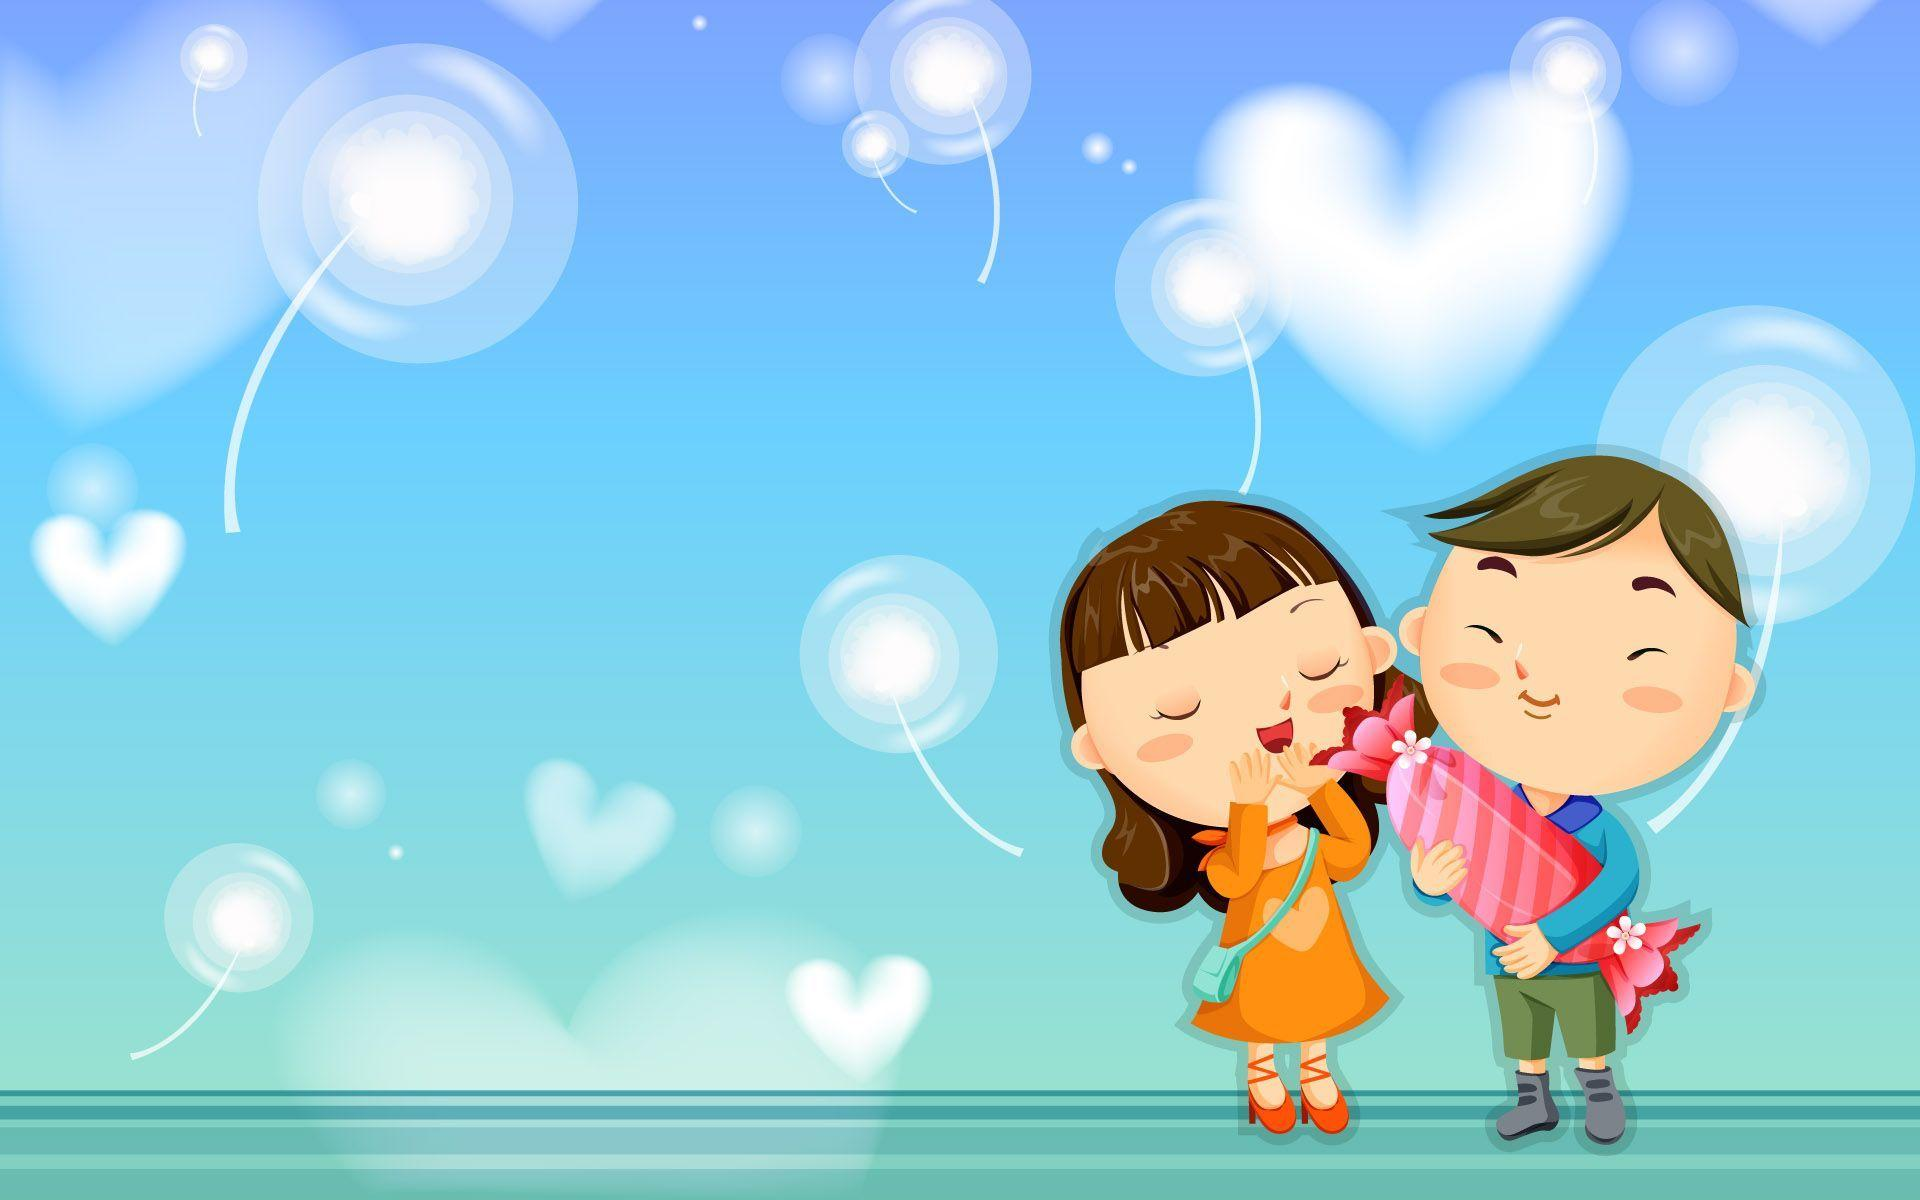 Love cartoon Live Wallpaper : Love cartoon Wallpapers - Wallpaper cave